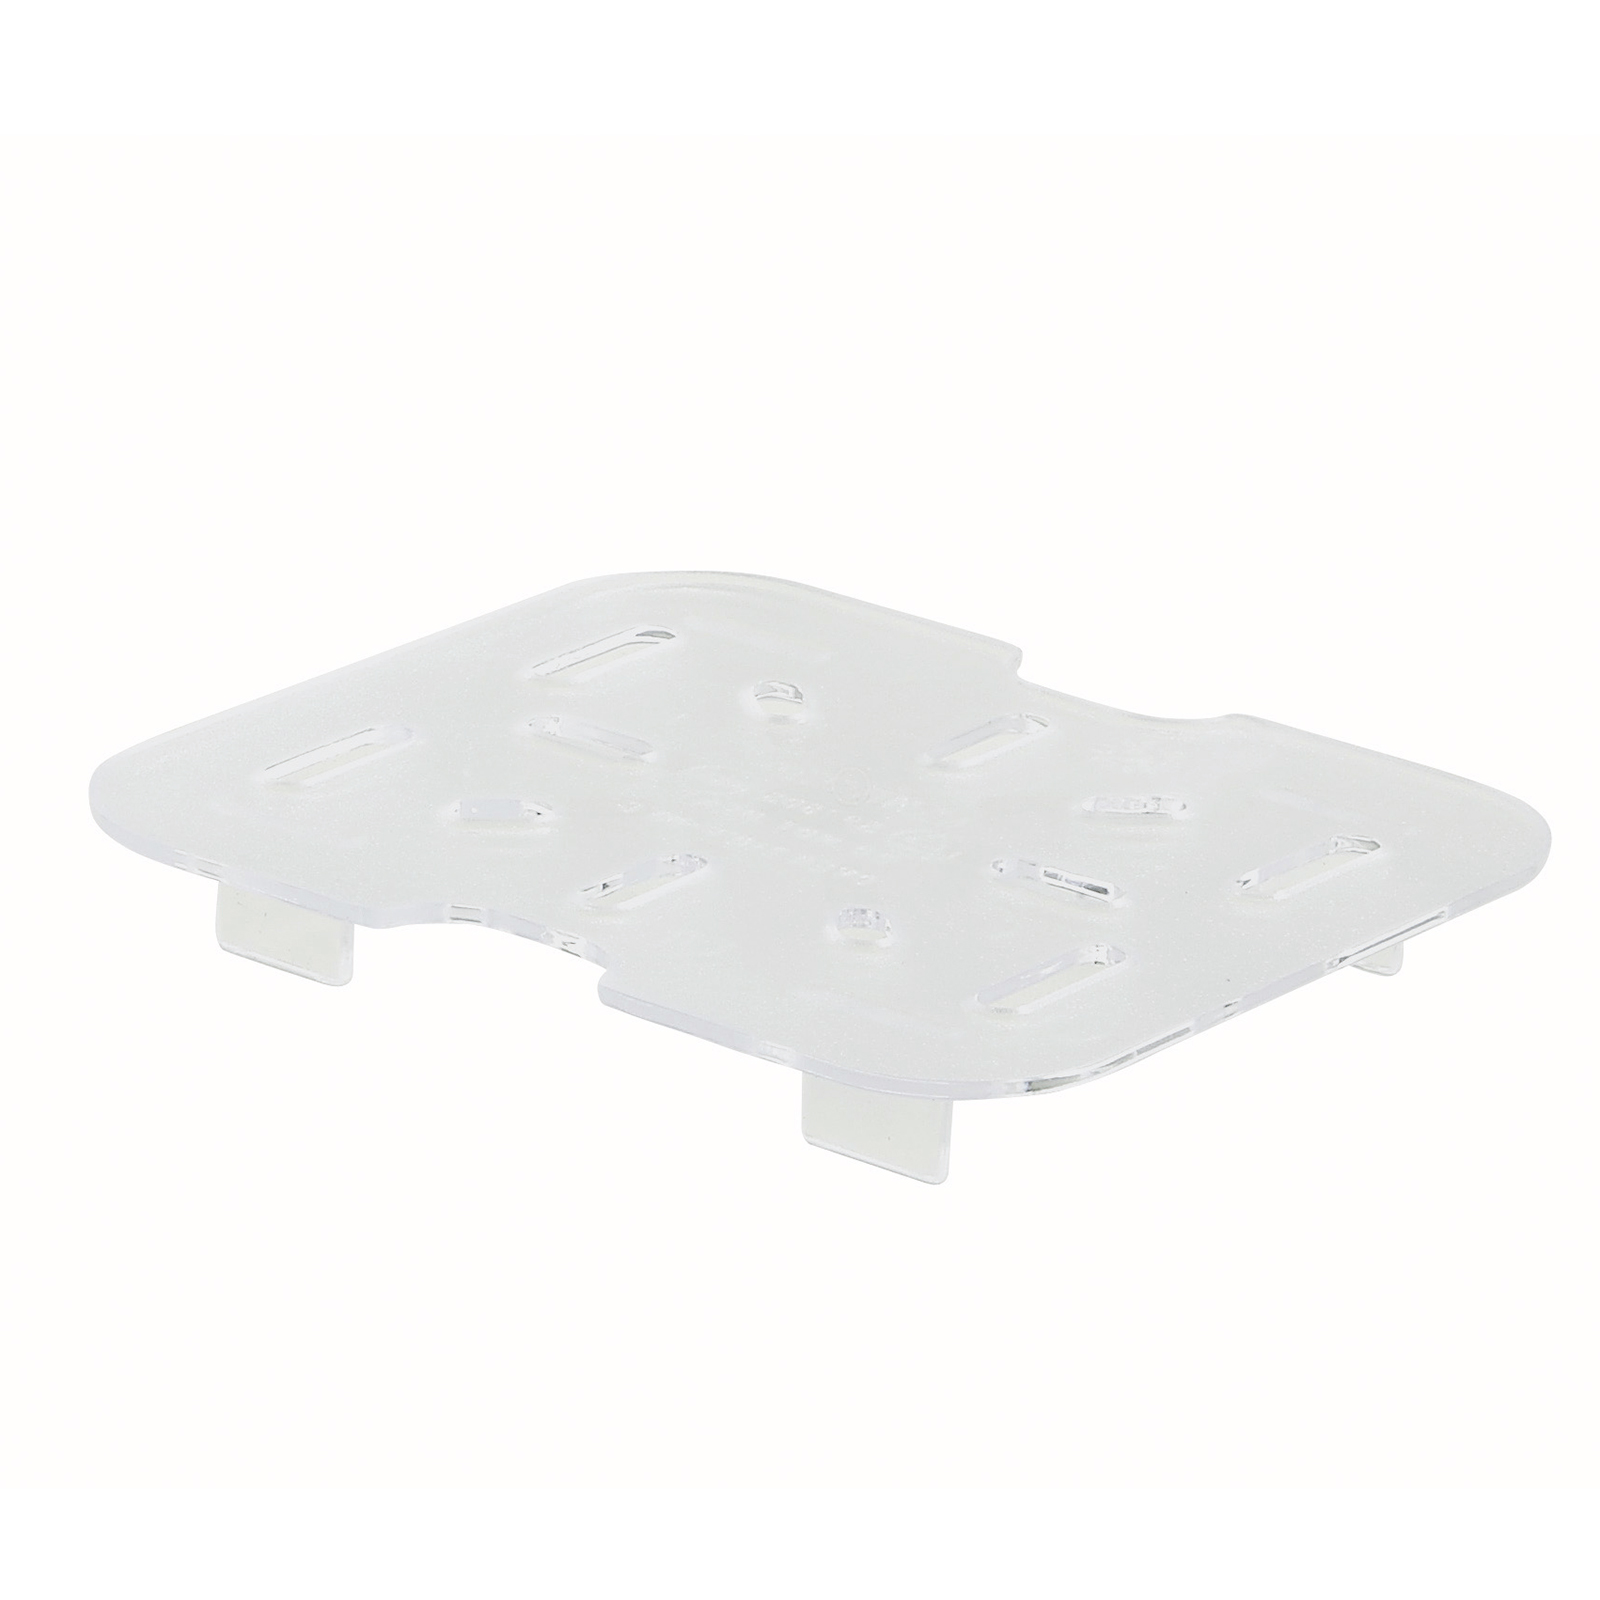 Winco SP76DS food pan drain tray